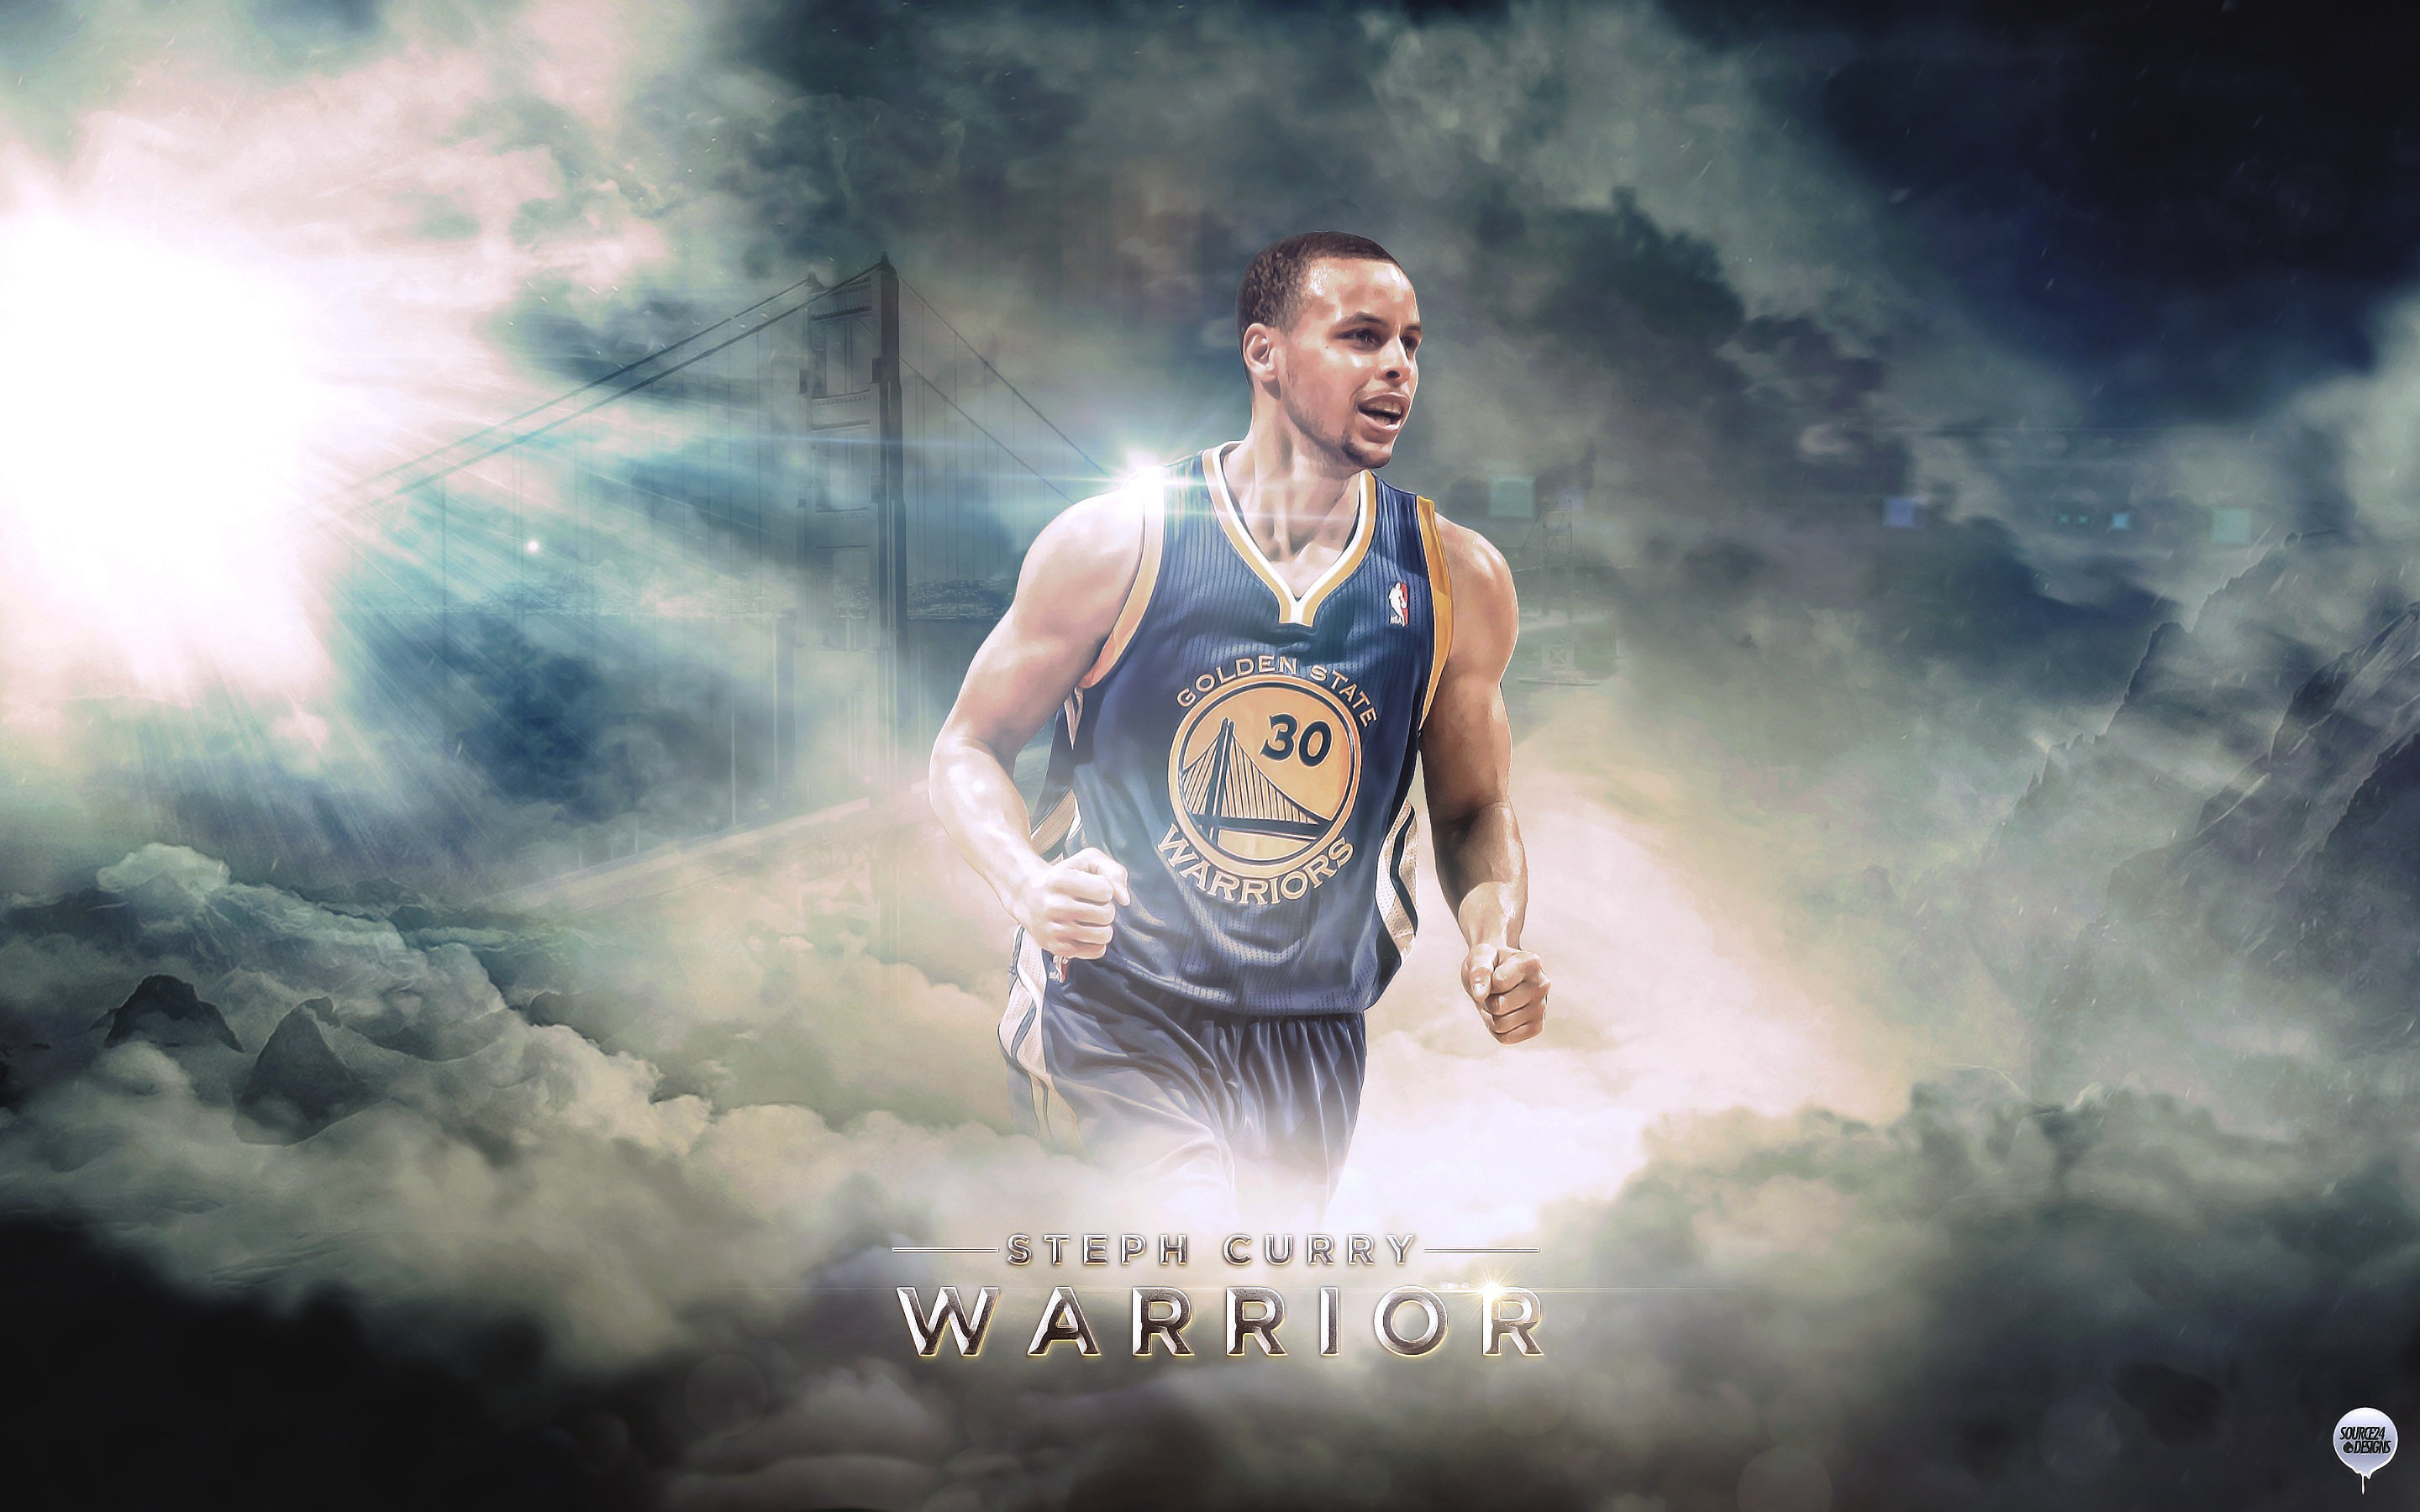 2880x1800 Stephen Curry Wallpaper Free Download | Wallpapers, Backgrounds .